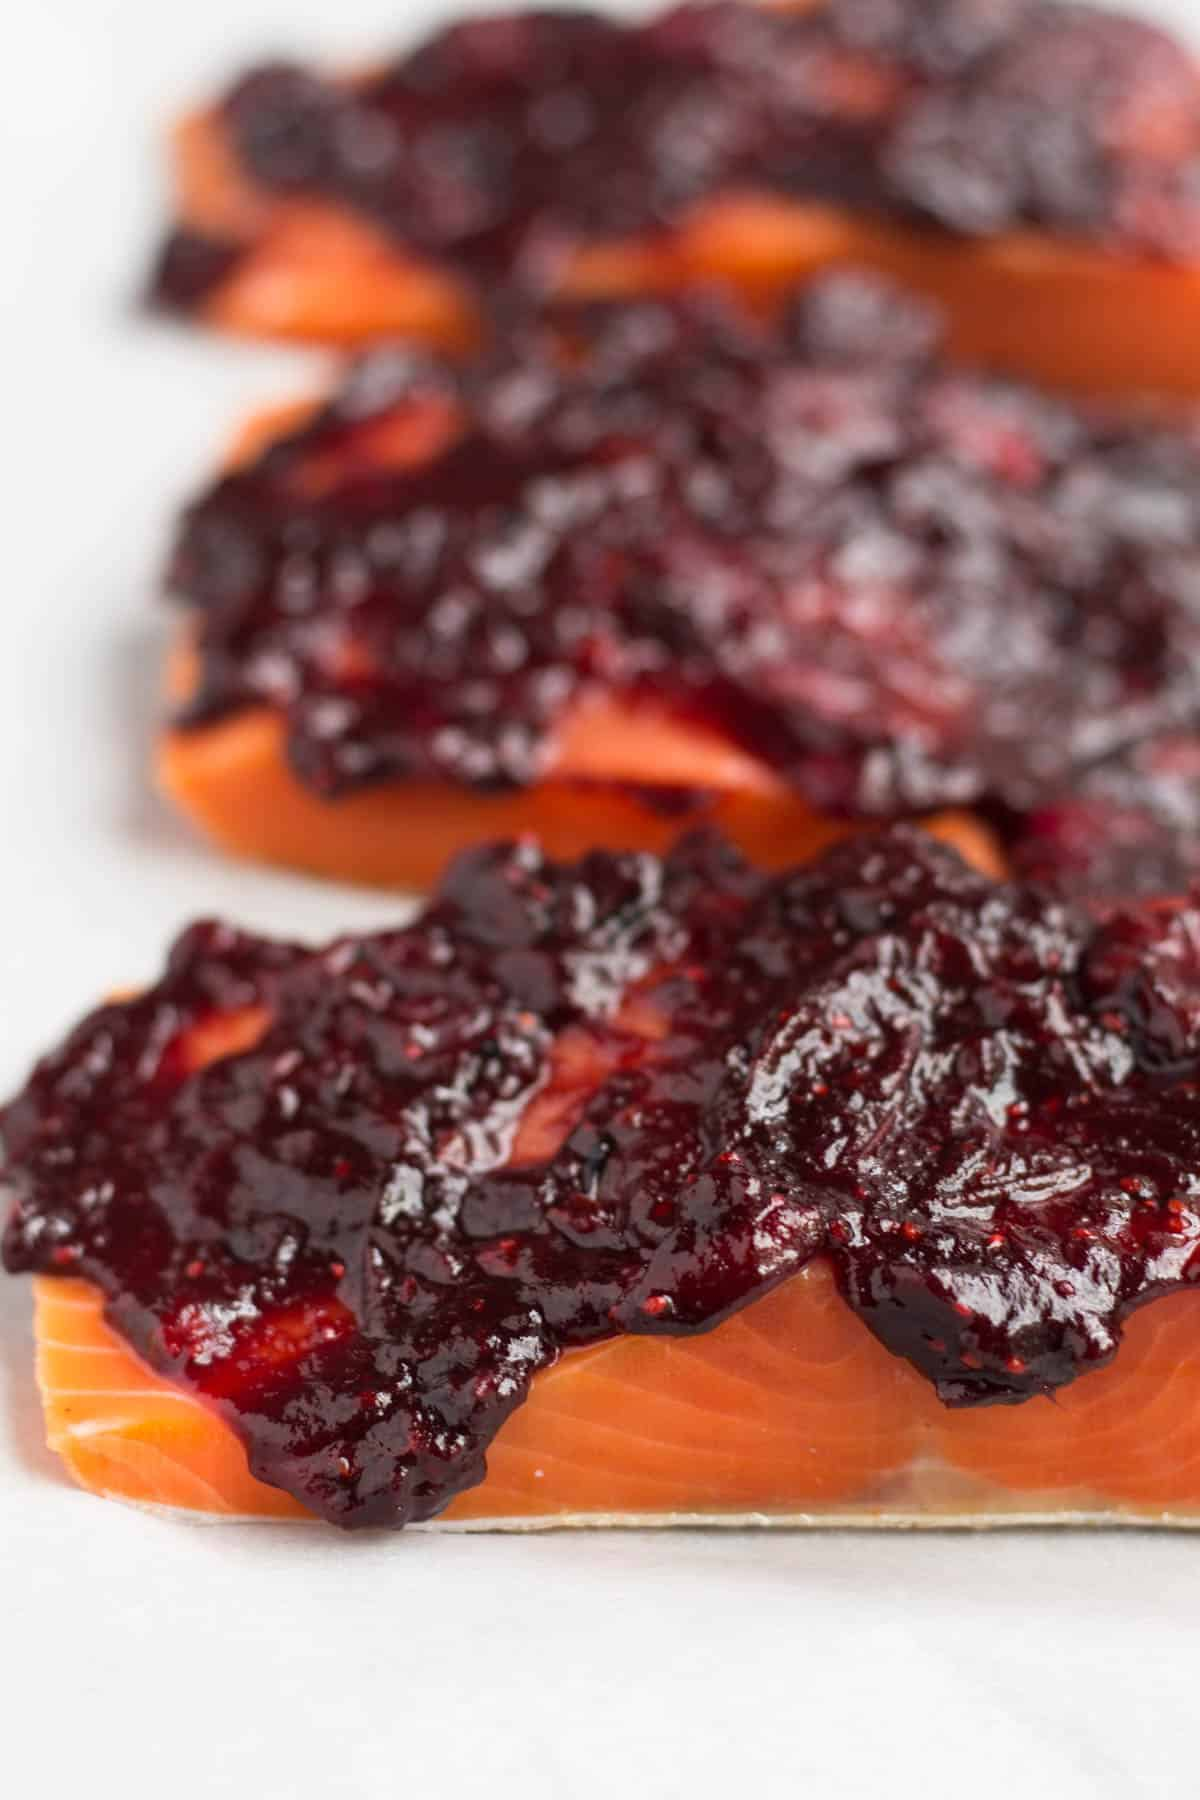 An easy and festive seafood dish, this Cranberry Balsamic Roasted Salmon takes 15 minutes, 4 ingredients, and is a crowd pleaser for the holidays - paleo and Whole30 approved! - Eat the Gains